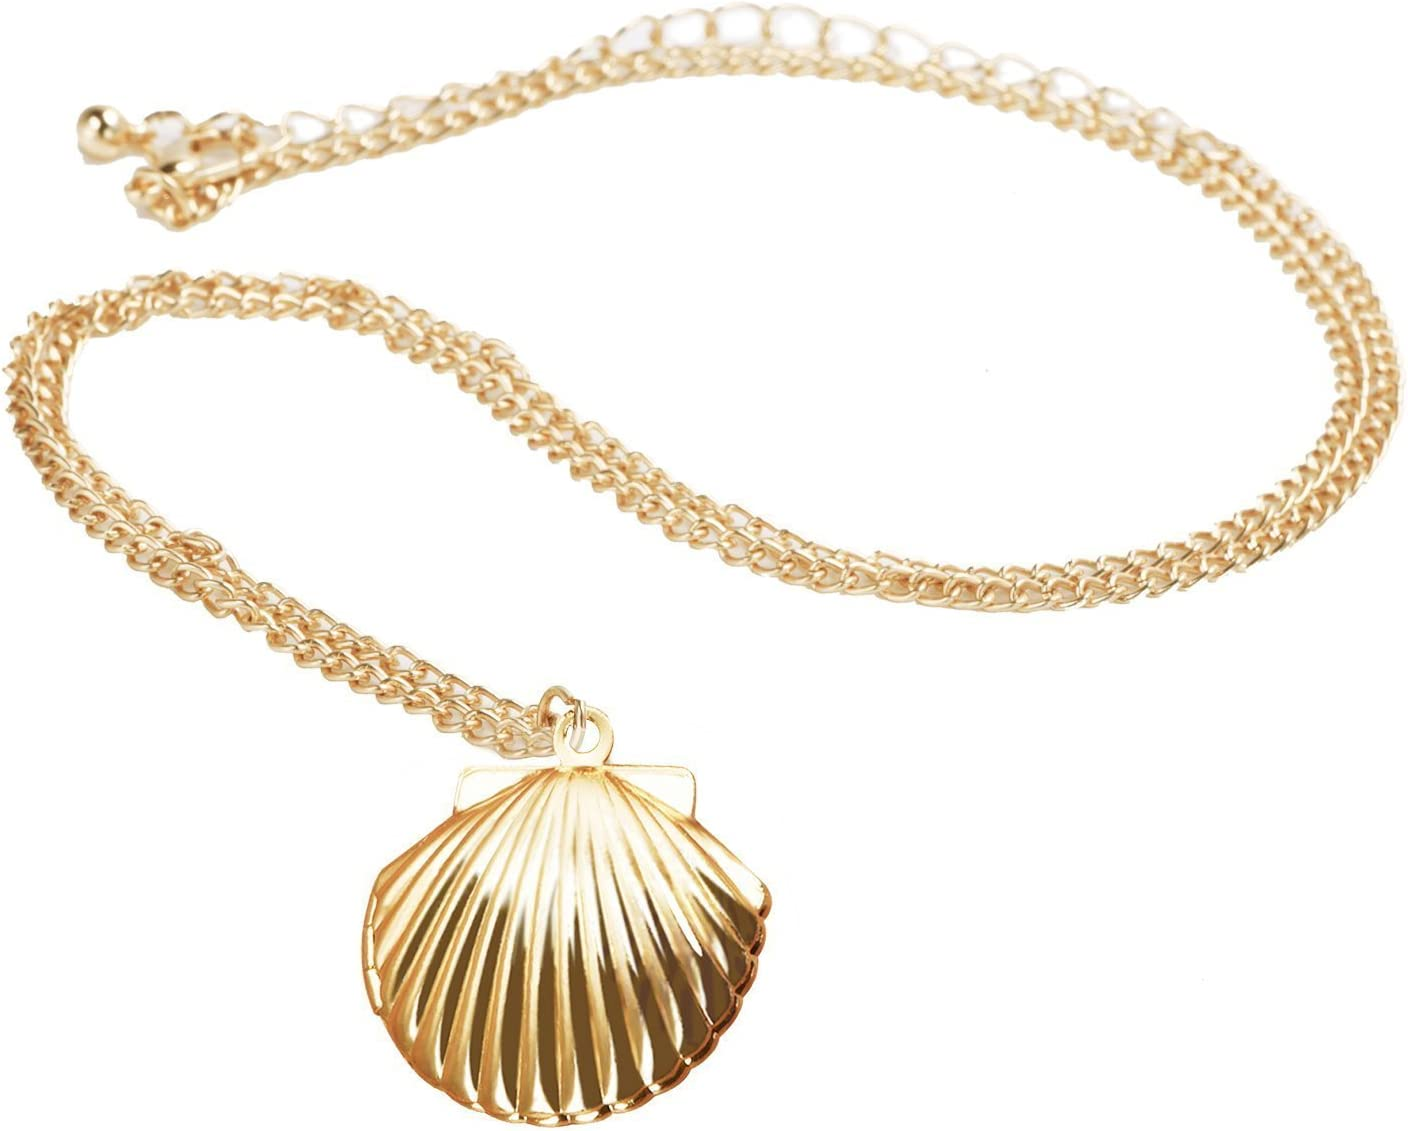 Nautical Jewelry For Women Party Favor Beach Locket Girls LOSOUL Mermaid Valentine Necklace Gold Tone Brass